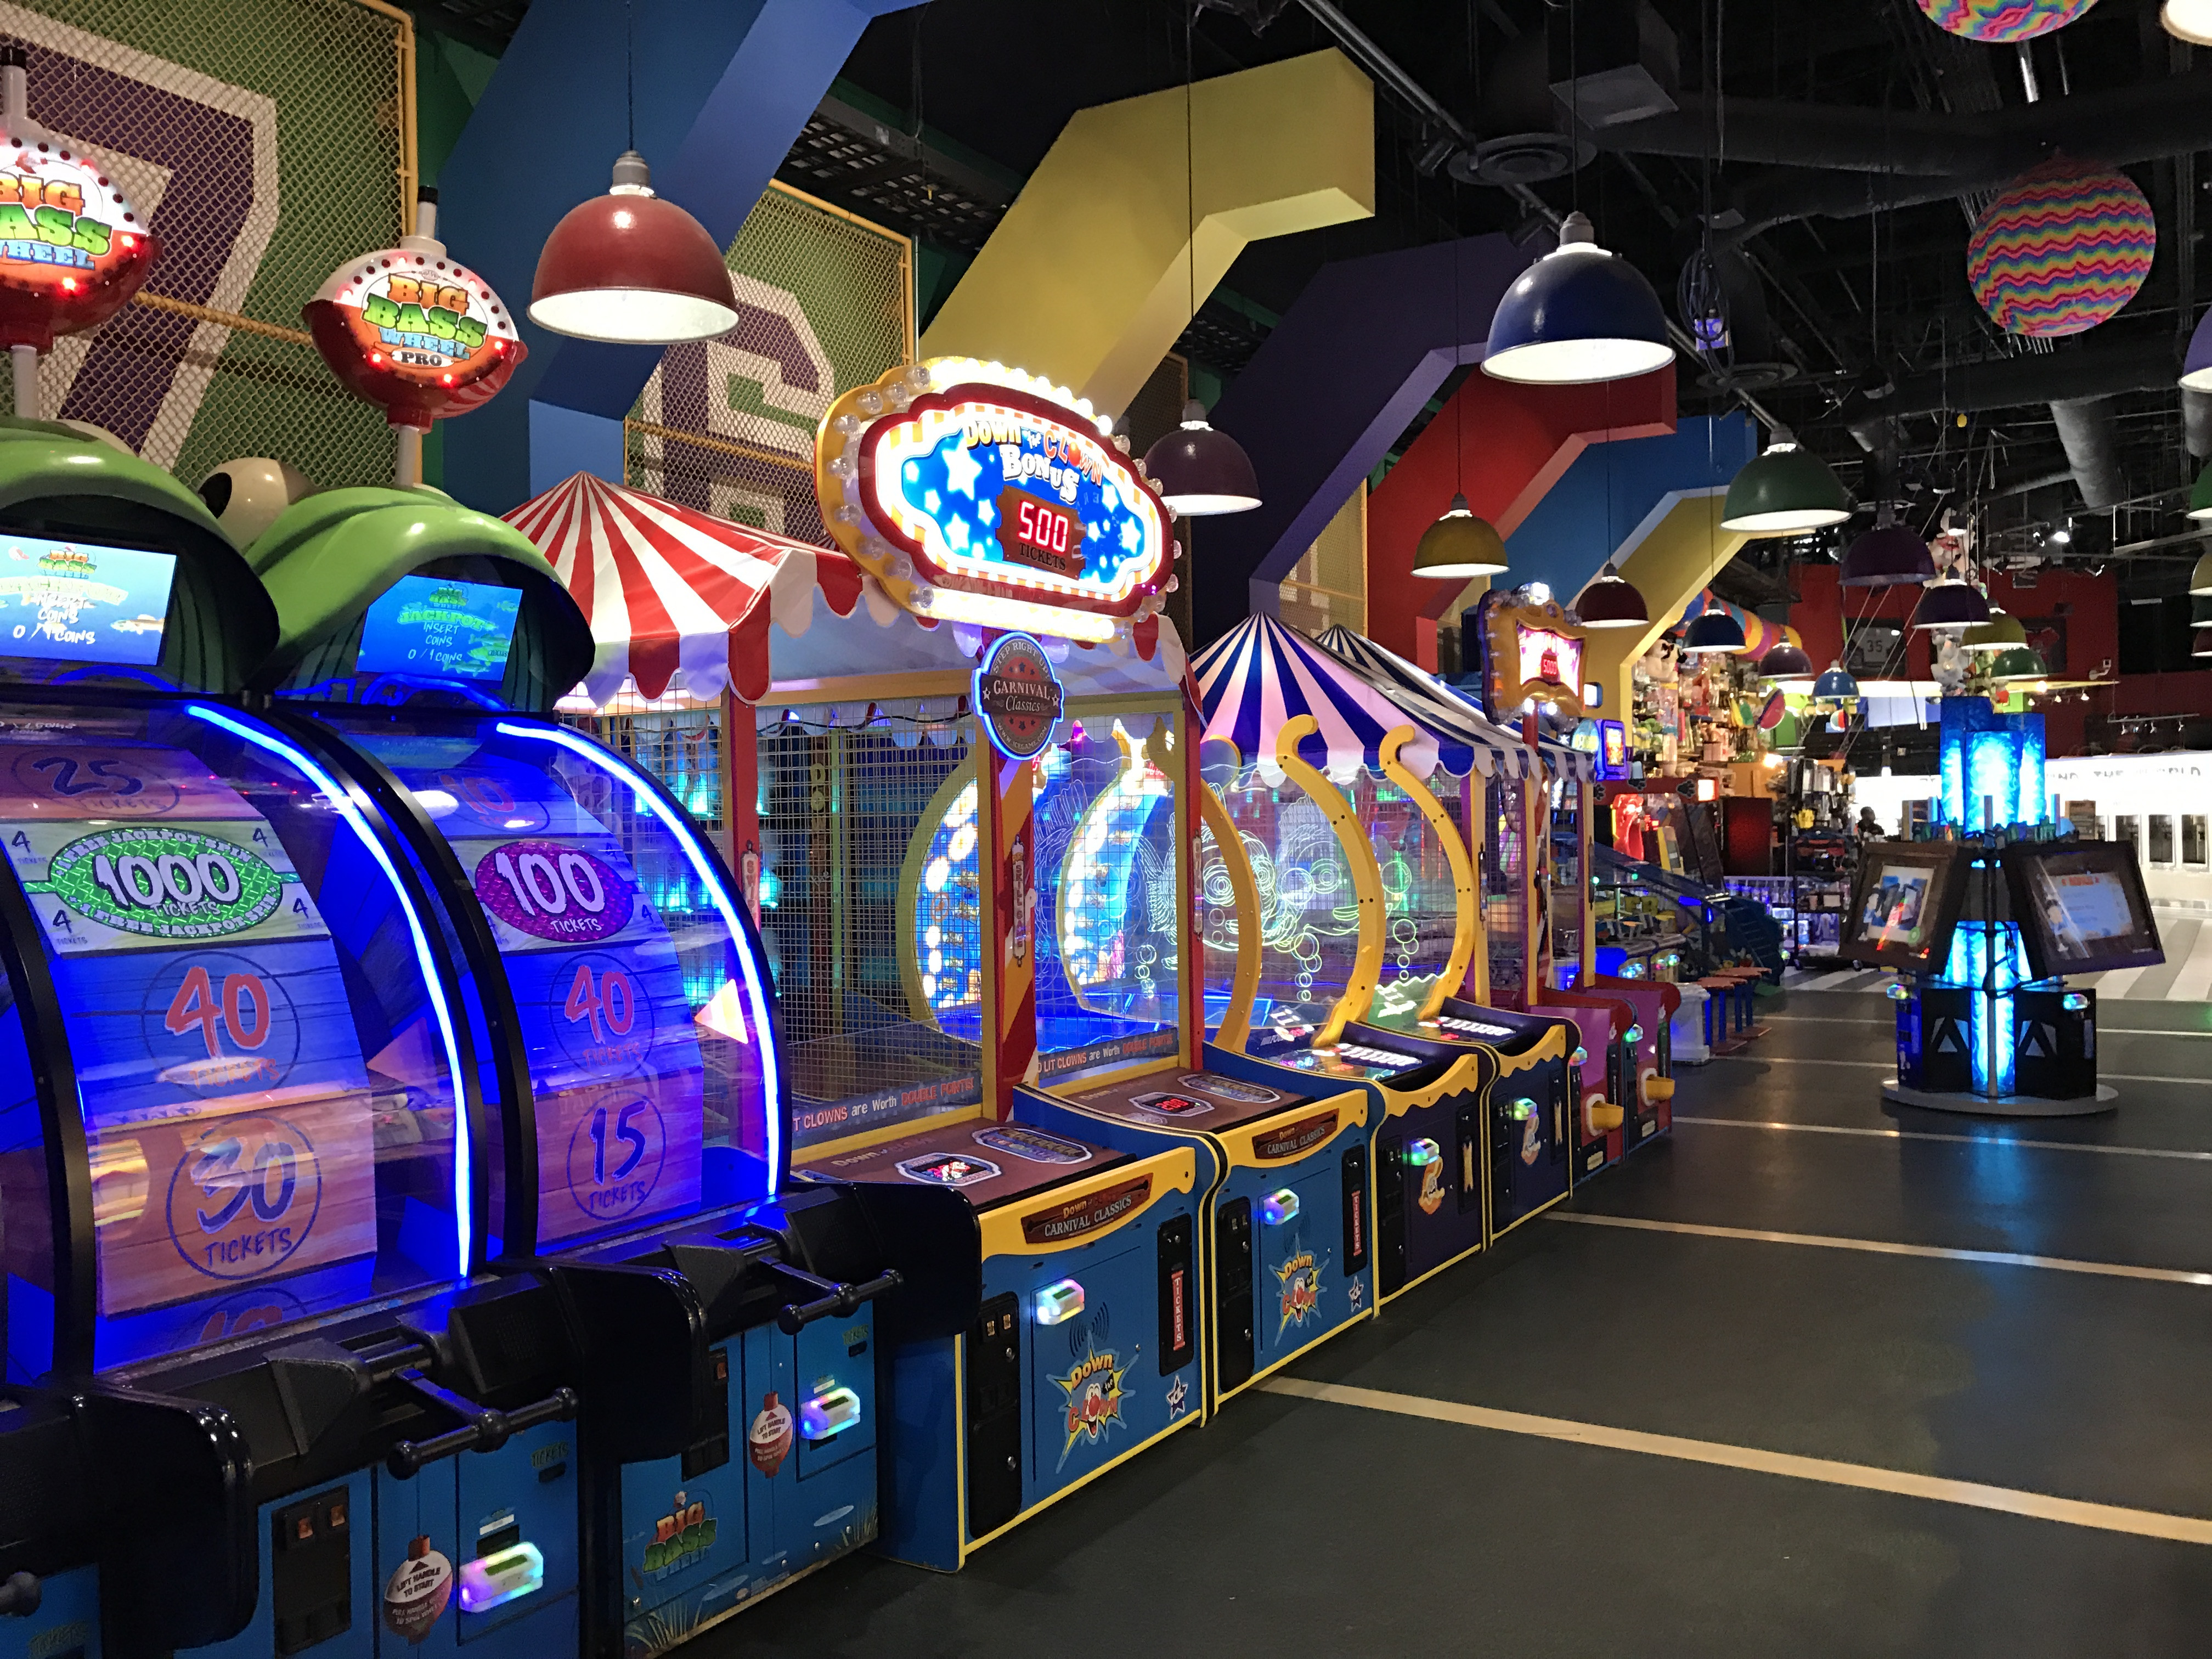 Best ideas about Game Room Sawgrass . Save or Pin Play Video Games Simulators & Attractions Now.